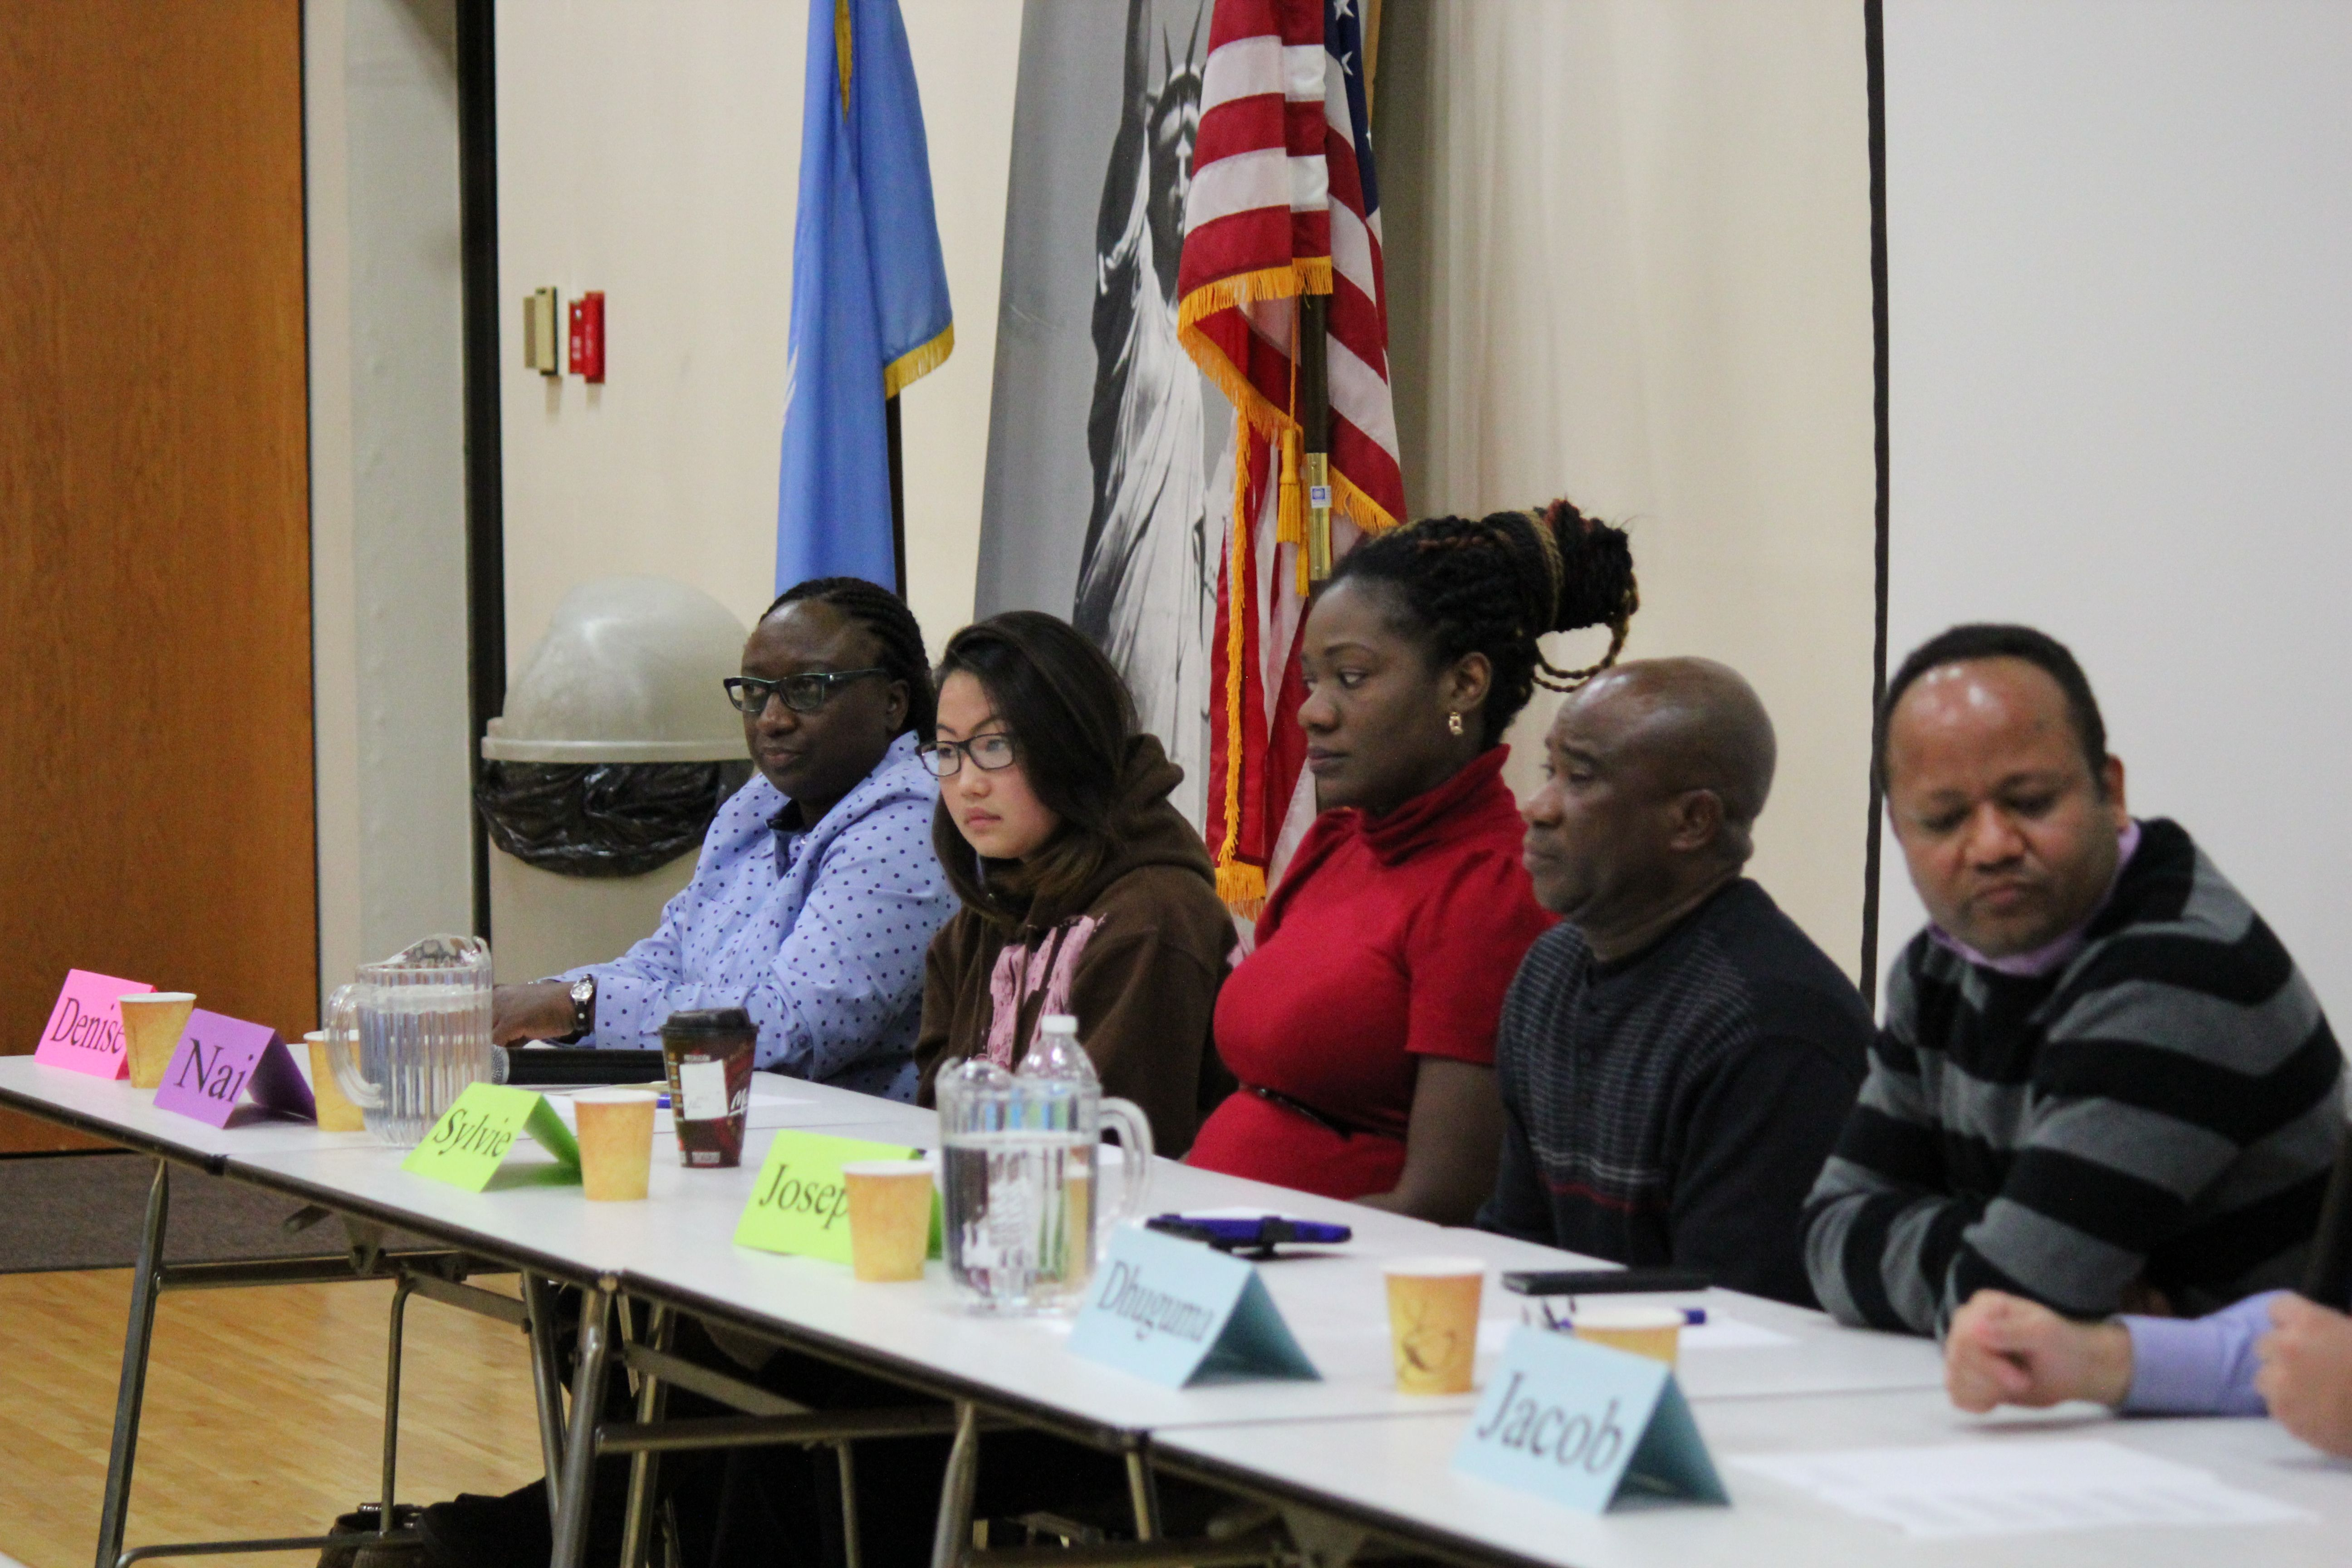 Five New Americans Speaking on a pannel